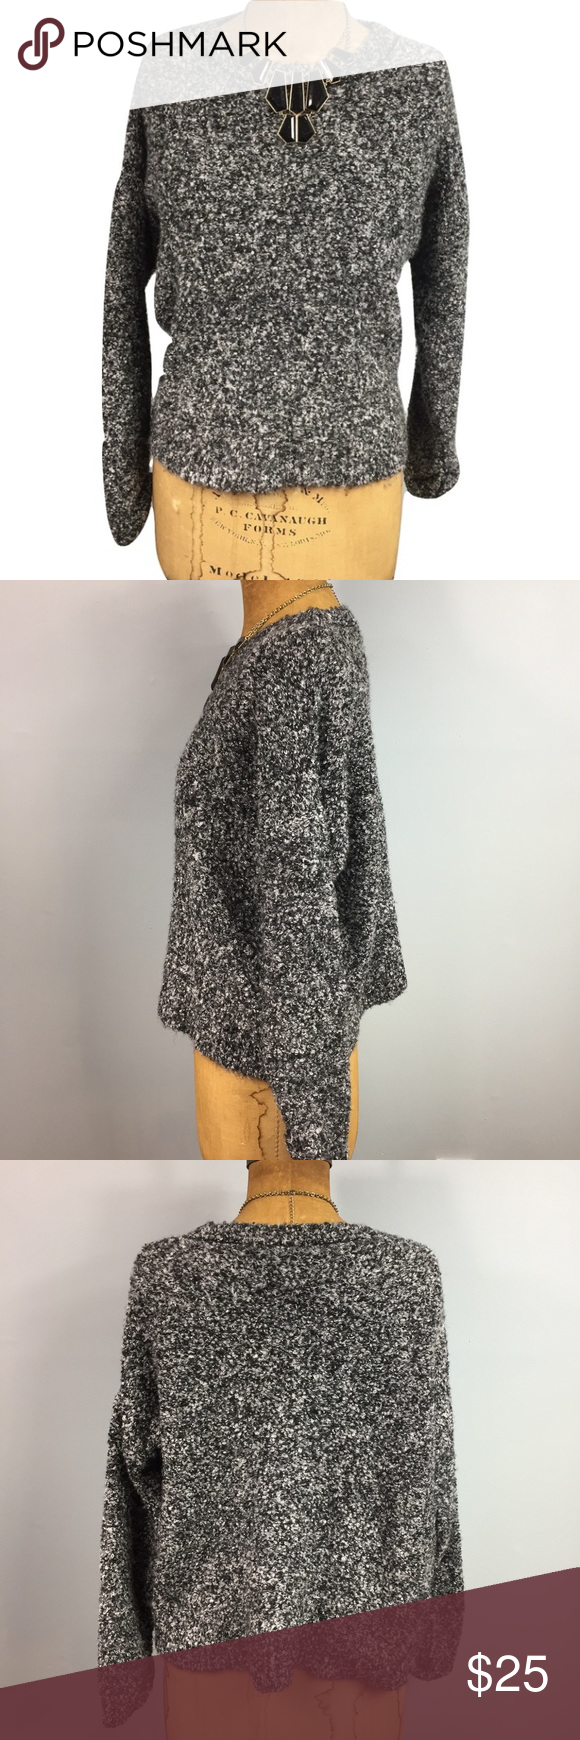 Sz 8 Topshop Sweater! Adorable sweater by Topshop. Very warm and fuzzy, perfect to pair with some high waisted skinny jeans or a skirt! Can easily be dressed up or down. 68% acrylic and 18% wool. Sz 8, sleeves are pinned up (pictured) Topshop Sweaters